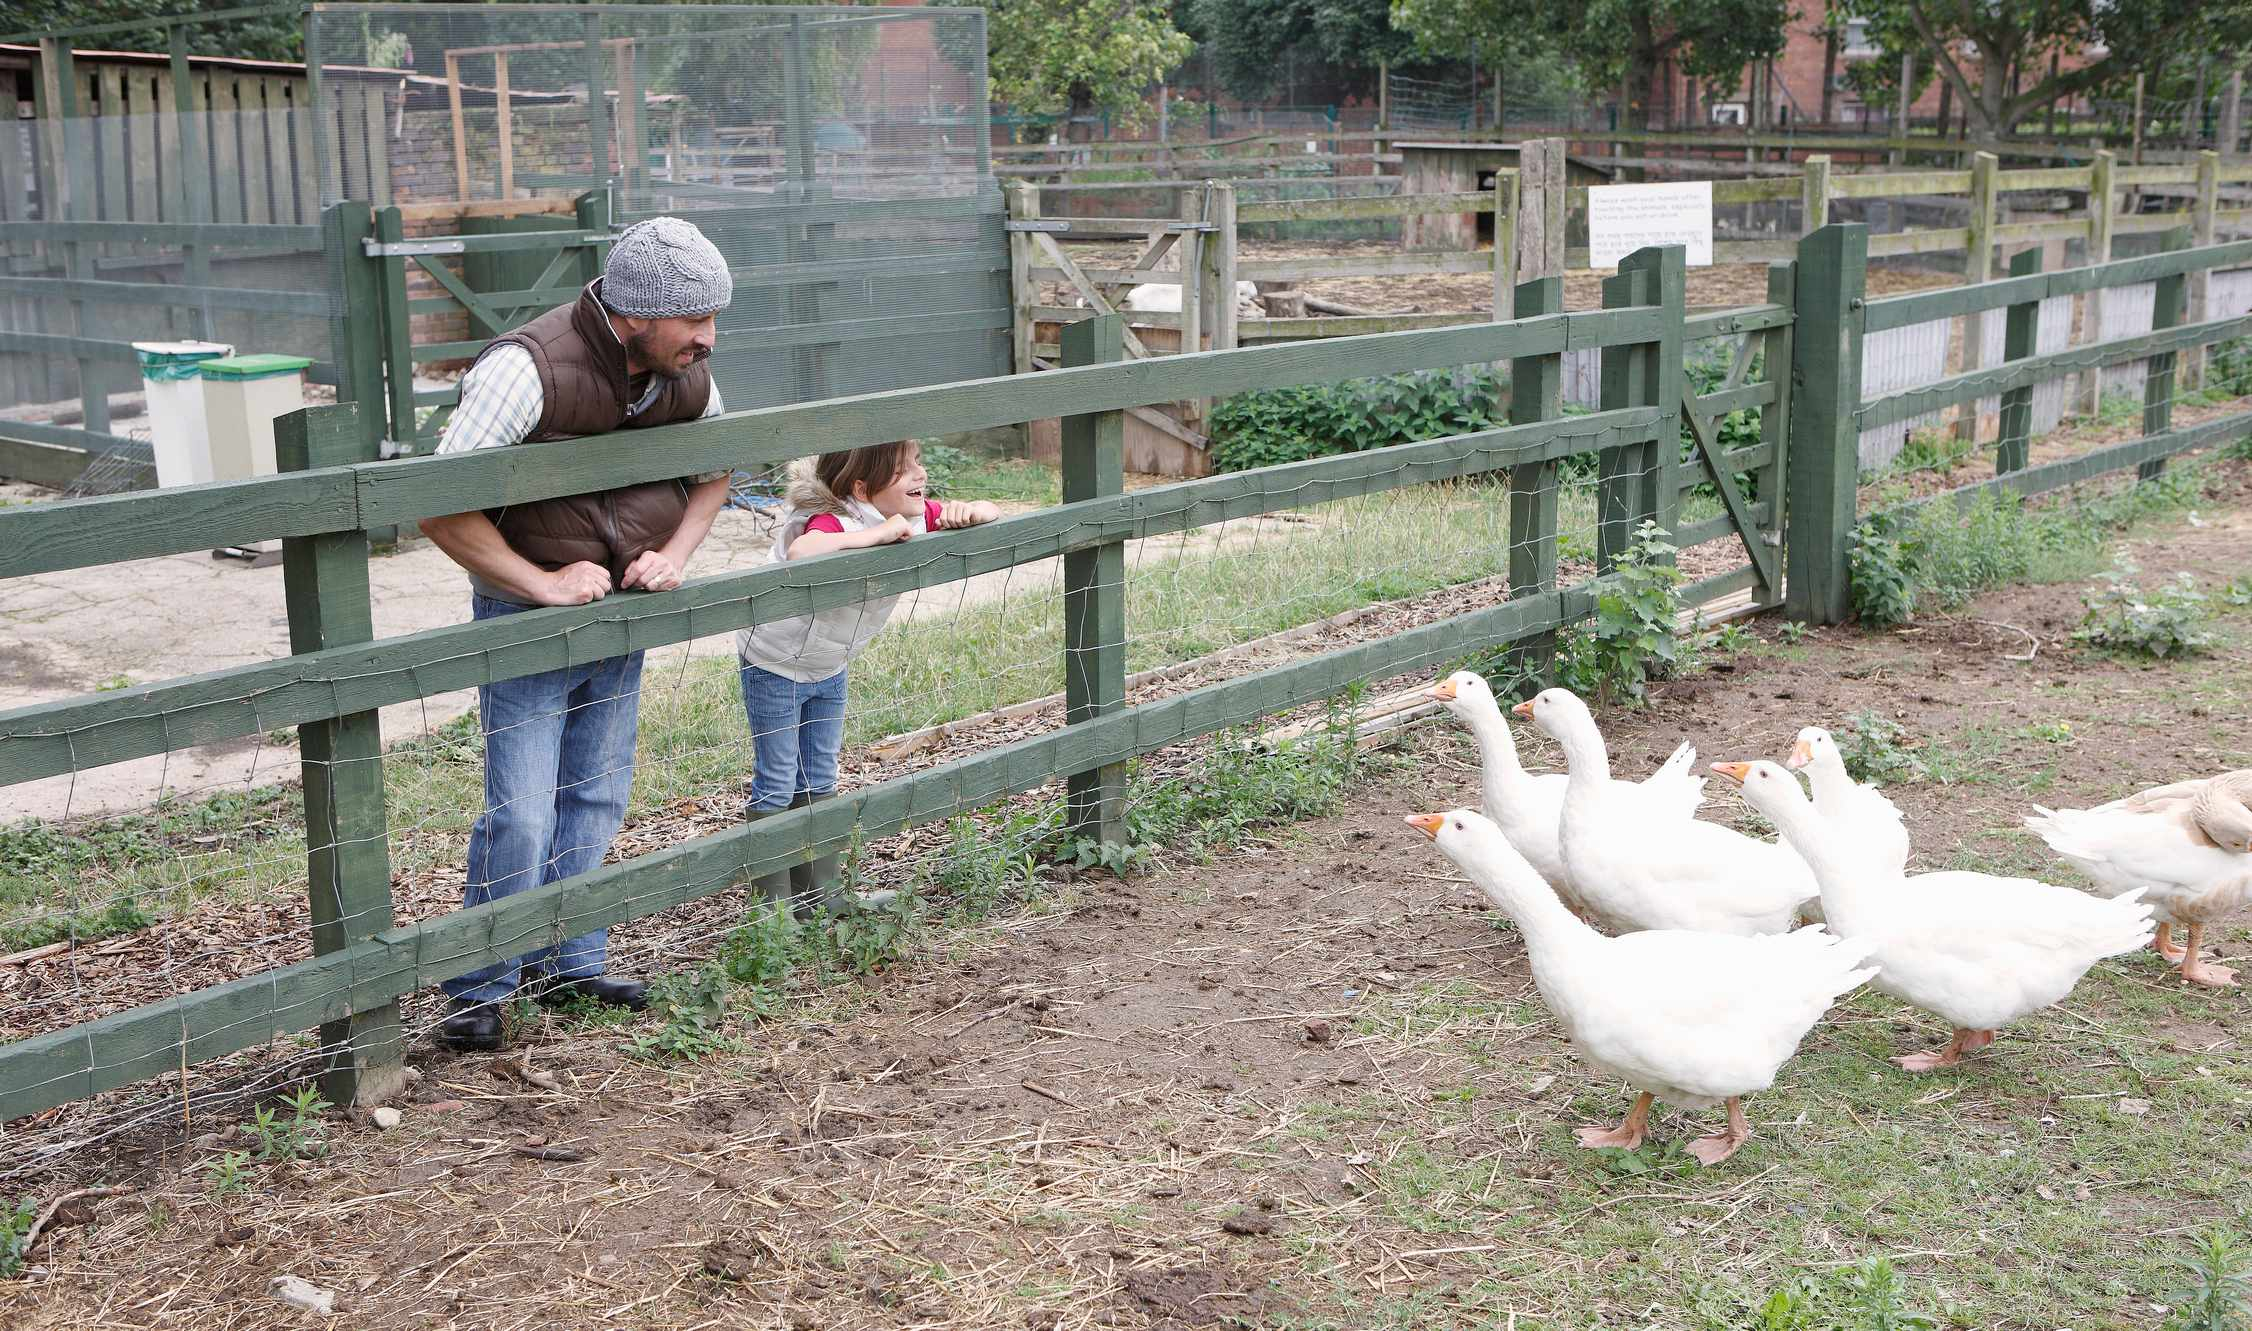 father and daughter visiting the geese a the city farm